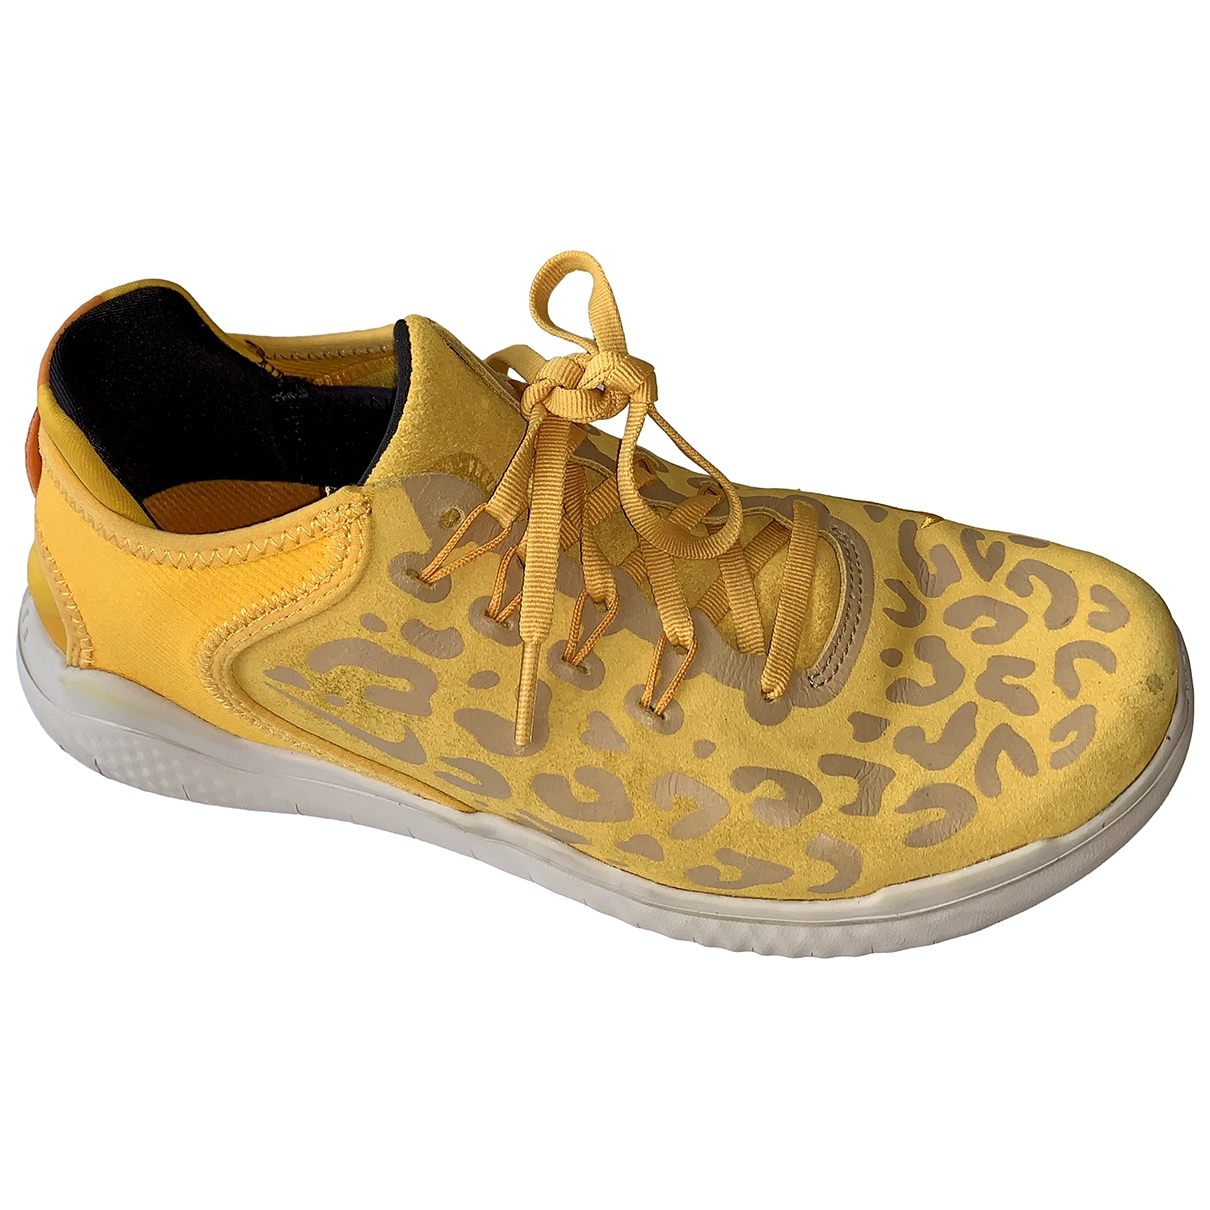 Nike Free Run Yellow Suede Trainers for Women 40 EU